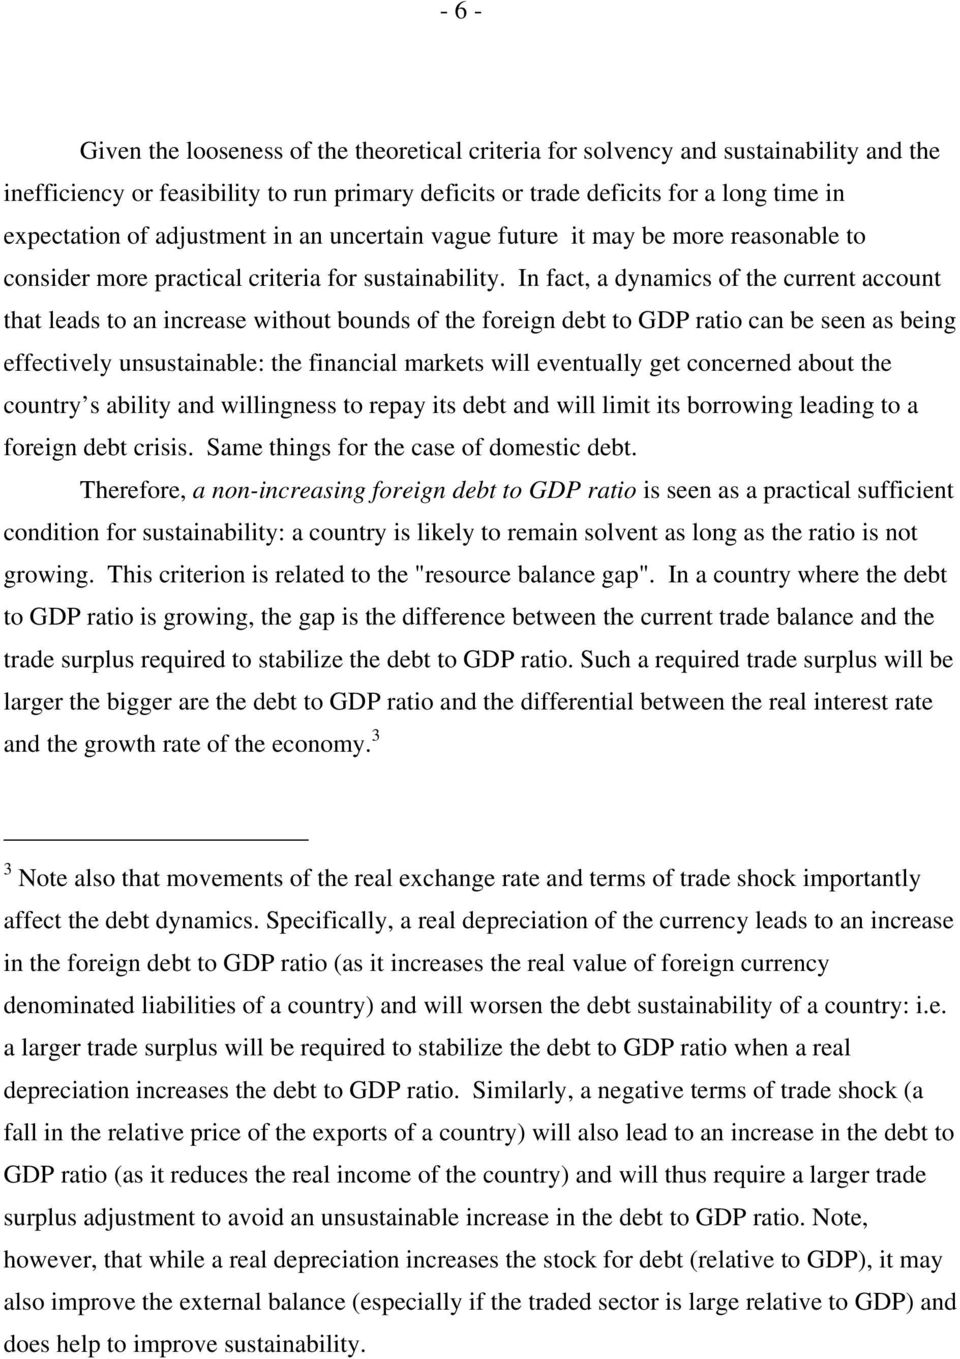 In fact, a dynamics of the current account that leads to an increase without bounds of the foreign debt to GDP ratio can be seen as being effectively unsustainable: the financial markets will